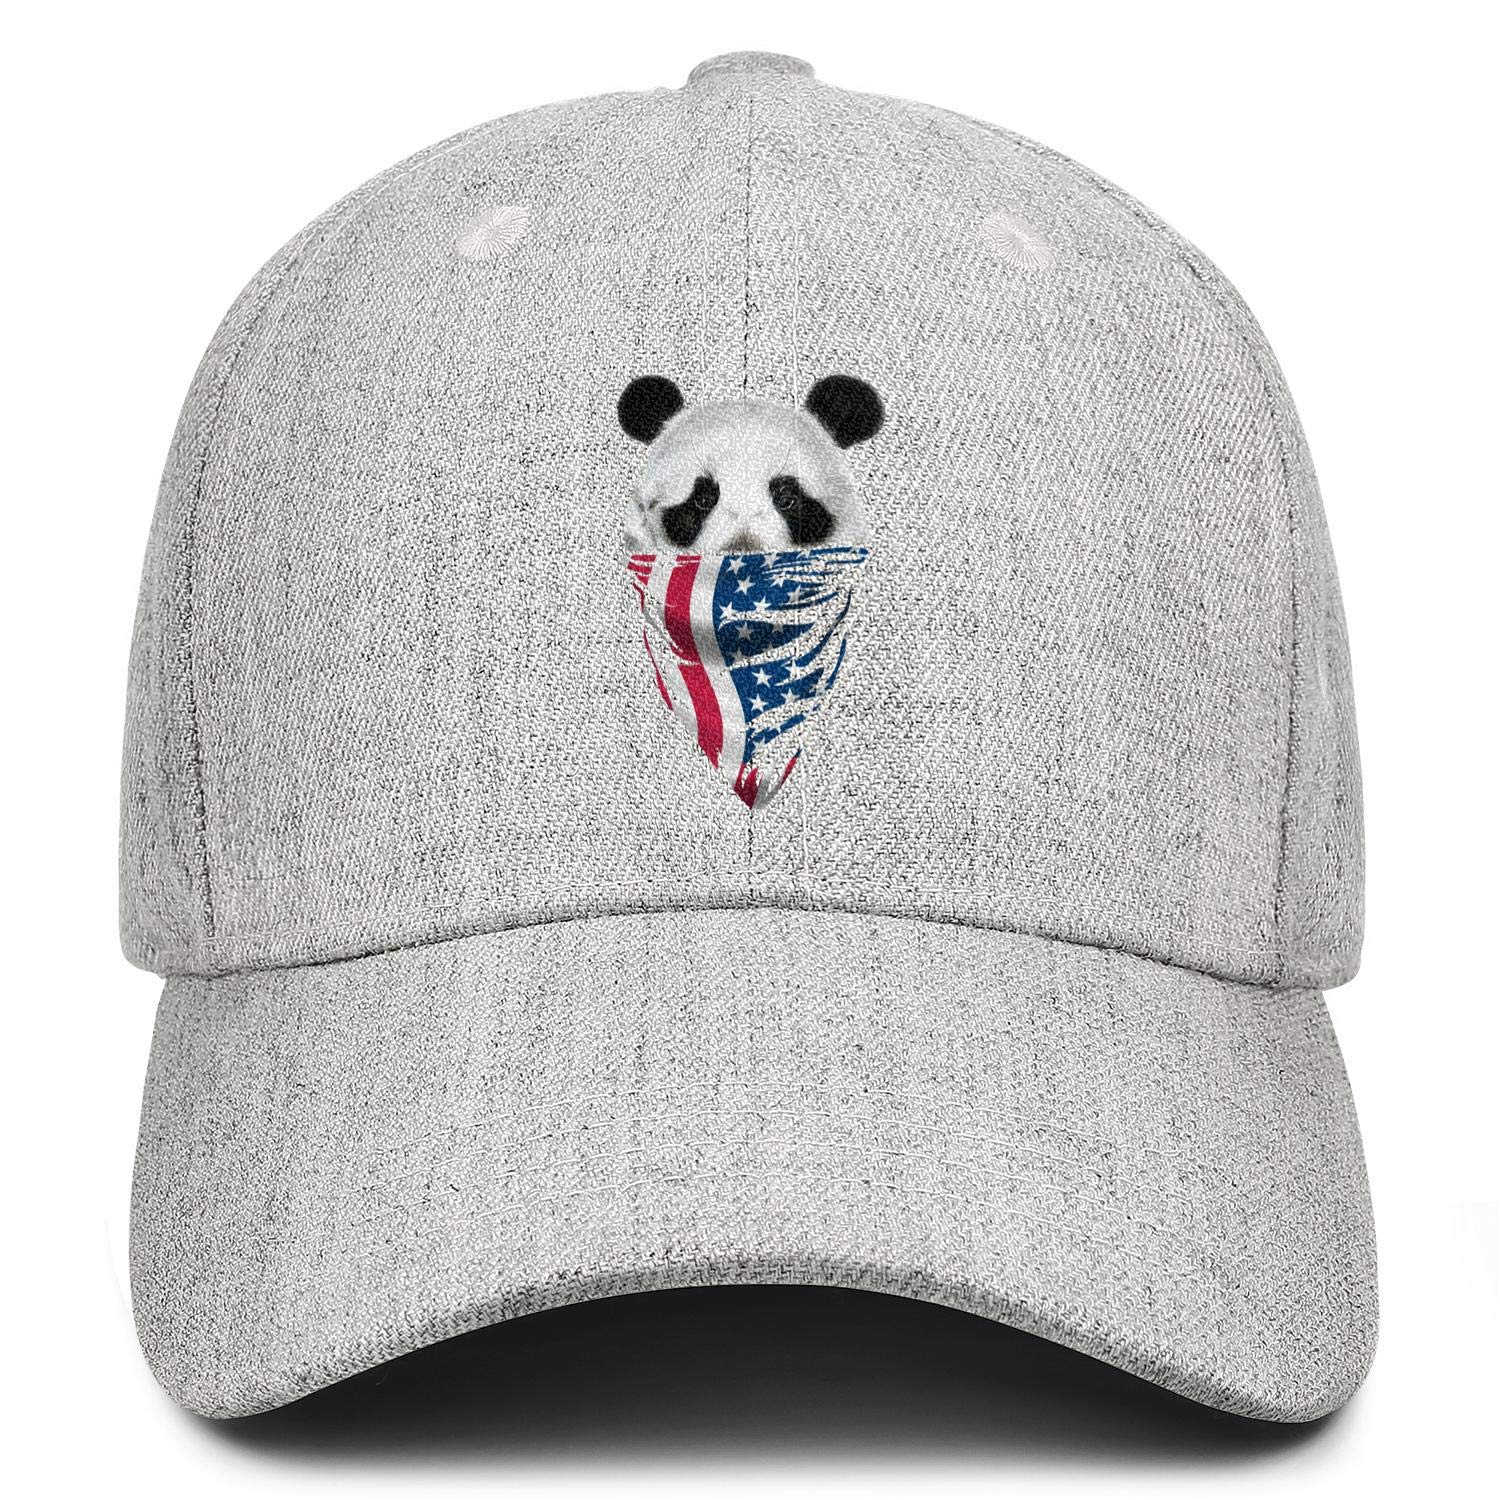 Panda Face and American Flag Unisex Baseball Cap Highly Breathable Running Hats Adjustable Trucker Caps Dad-Hat